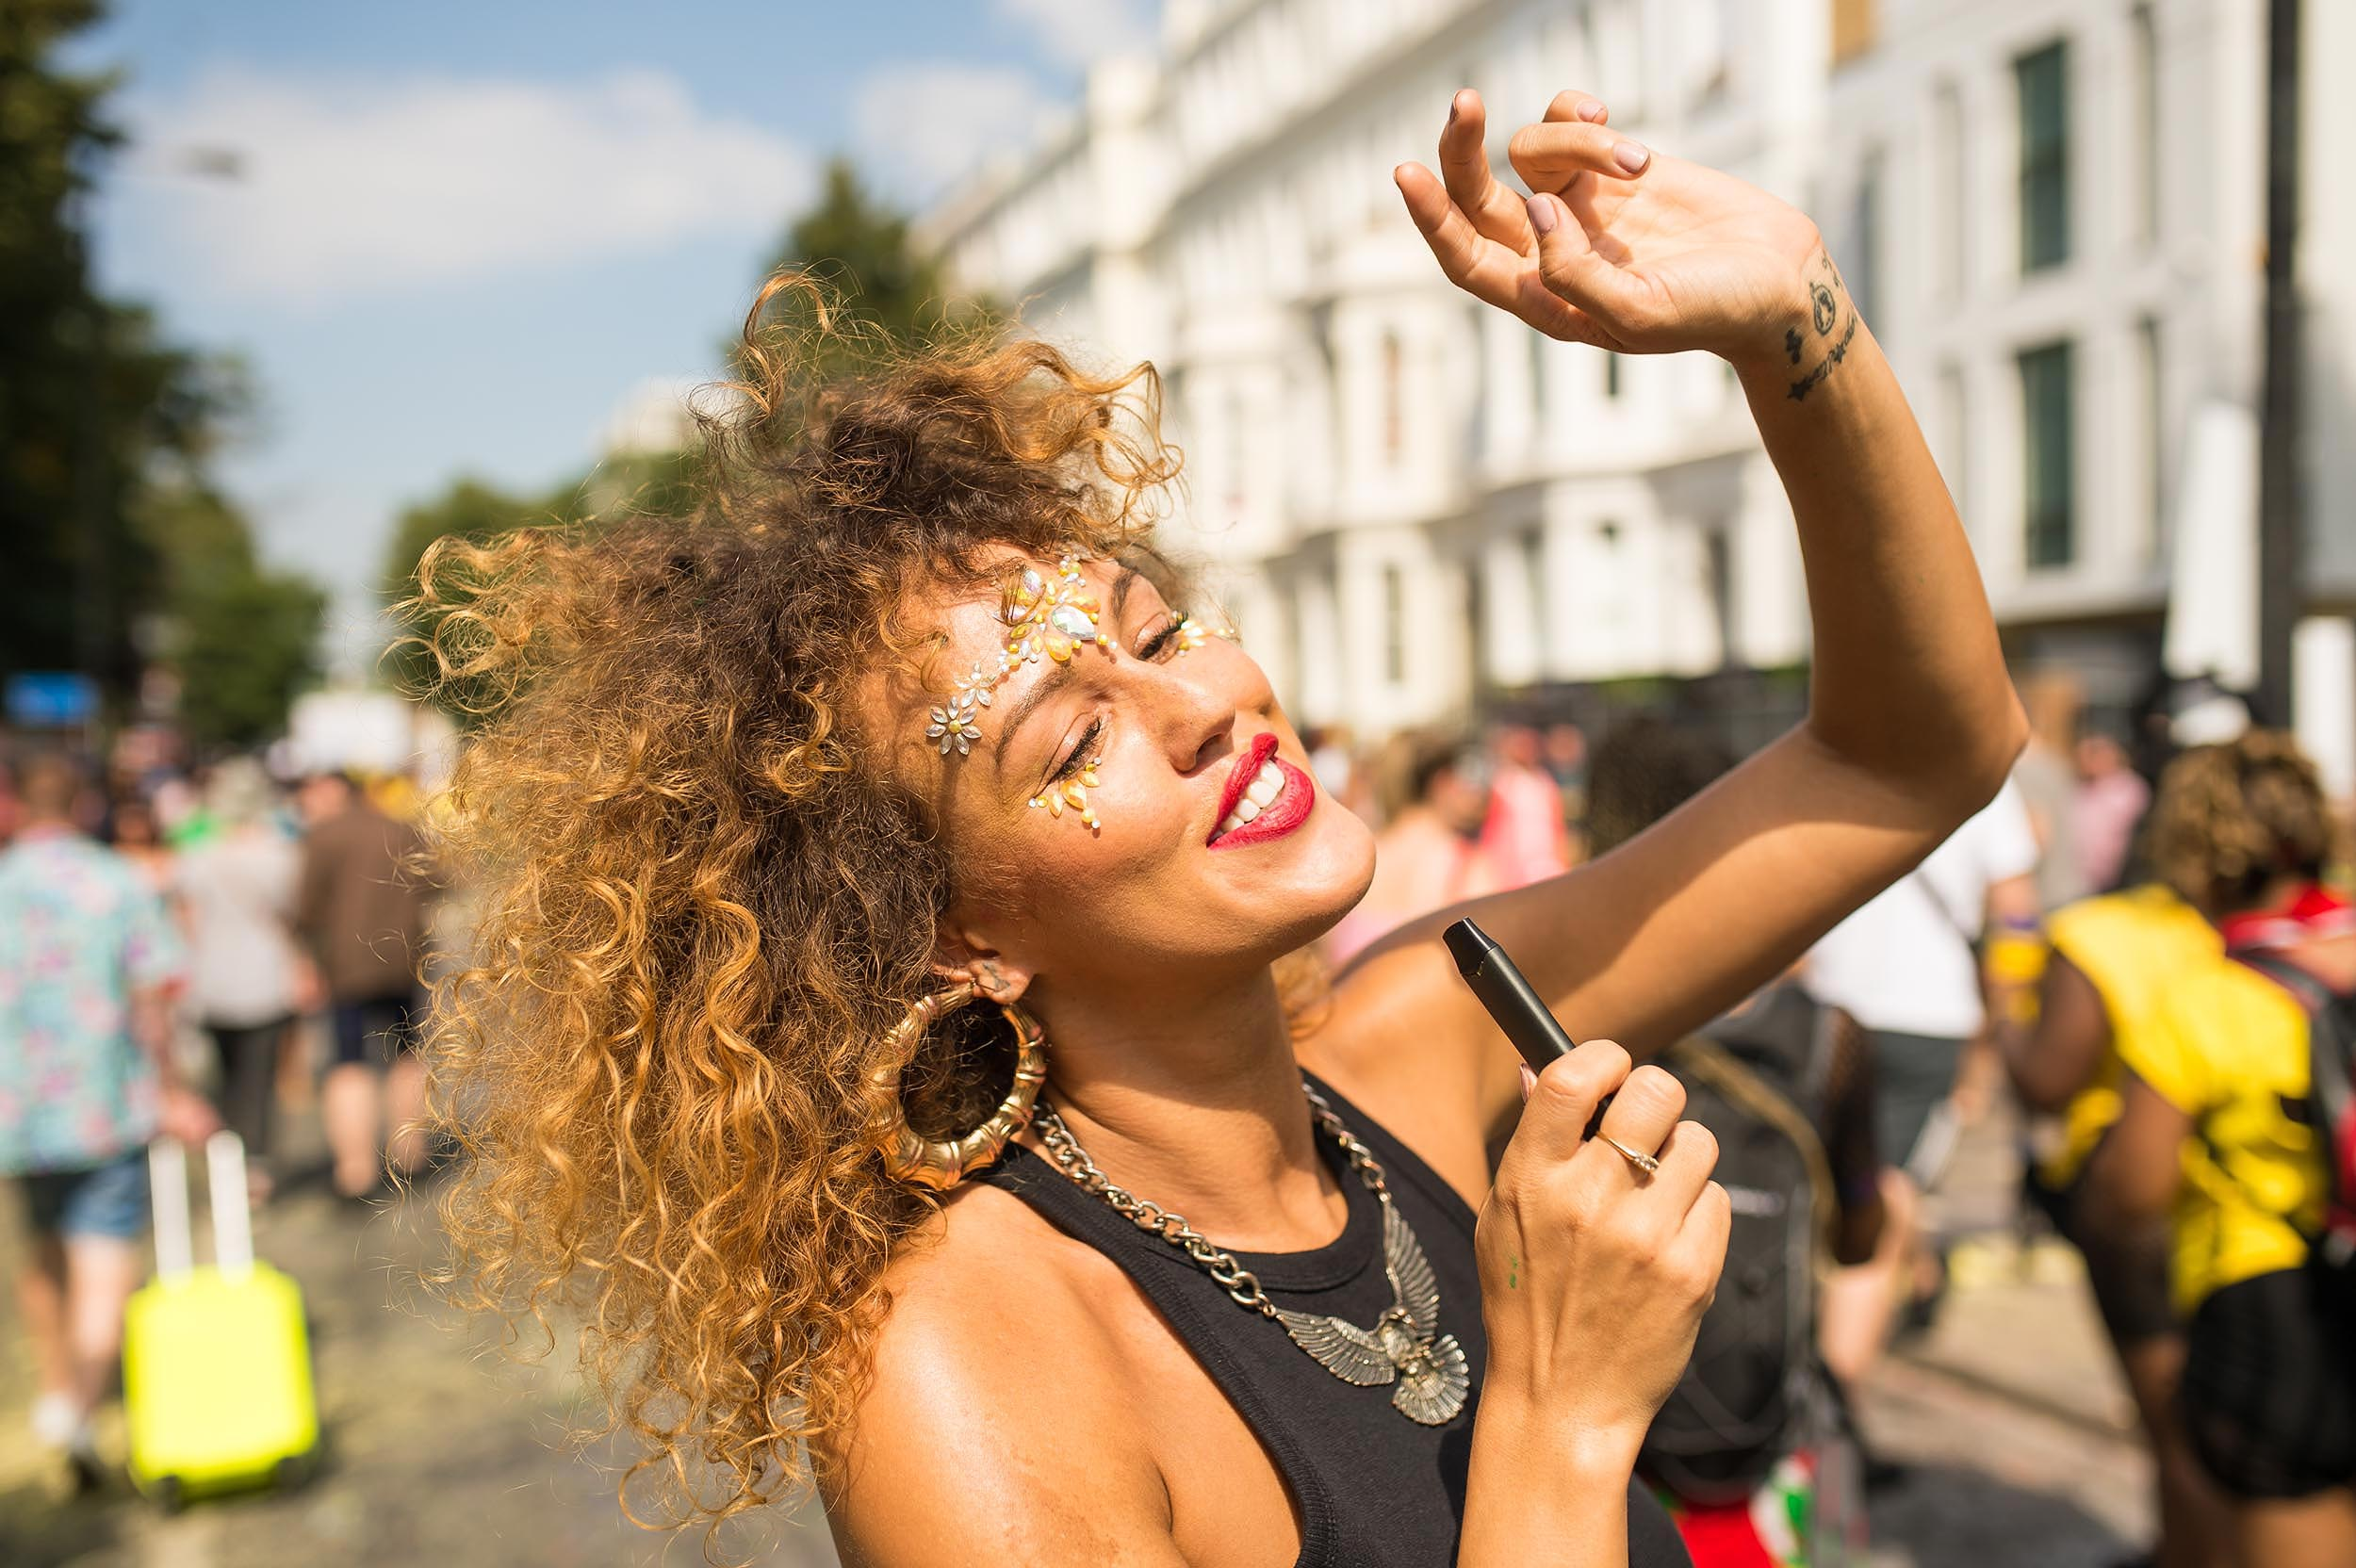 notting-hill-carnival-dancing-girl-culture-vaping-lifestyle-photographer-london